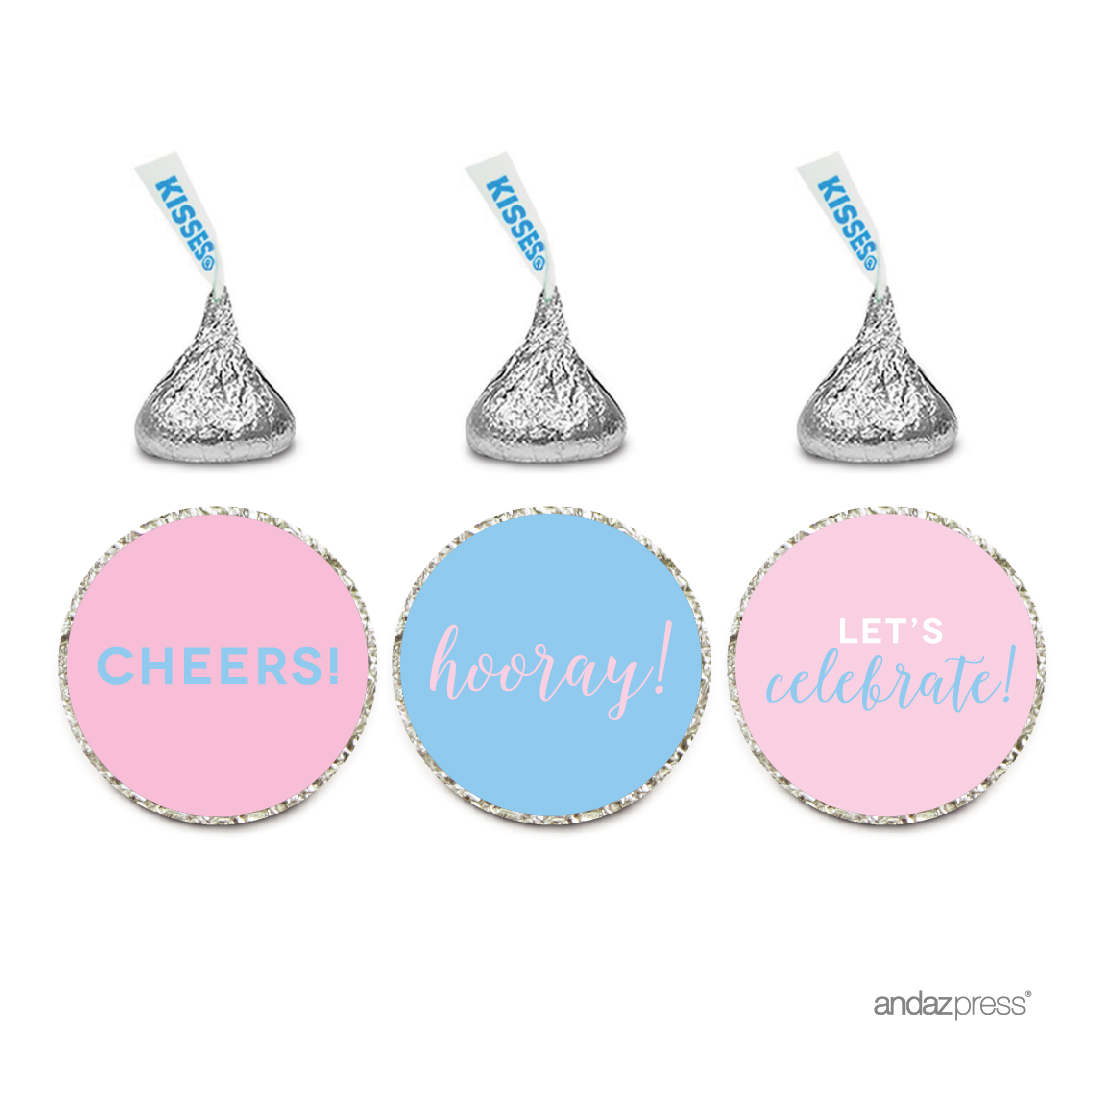 Signature Pink and Blue Gender Reveal Baby Shower, Chocolate Drop Stickers, Cheers! Hooray! Let's Celebrate, 216-Pack